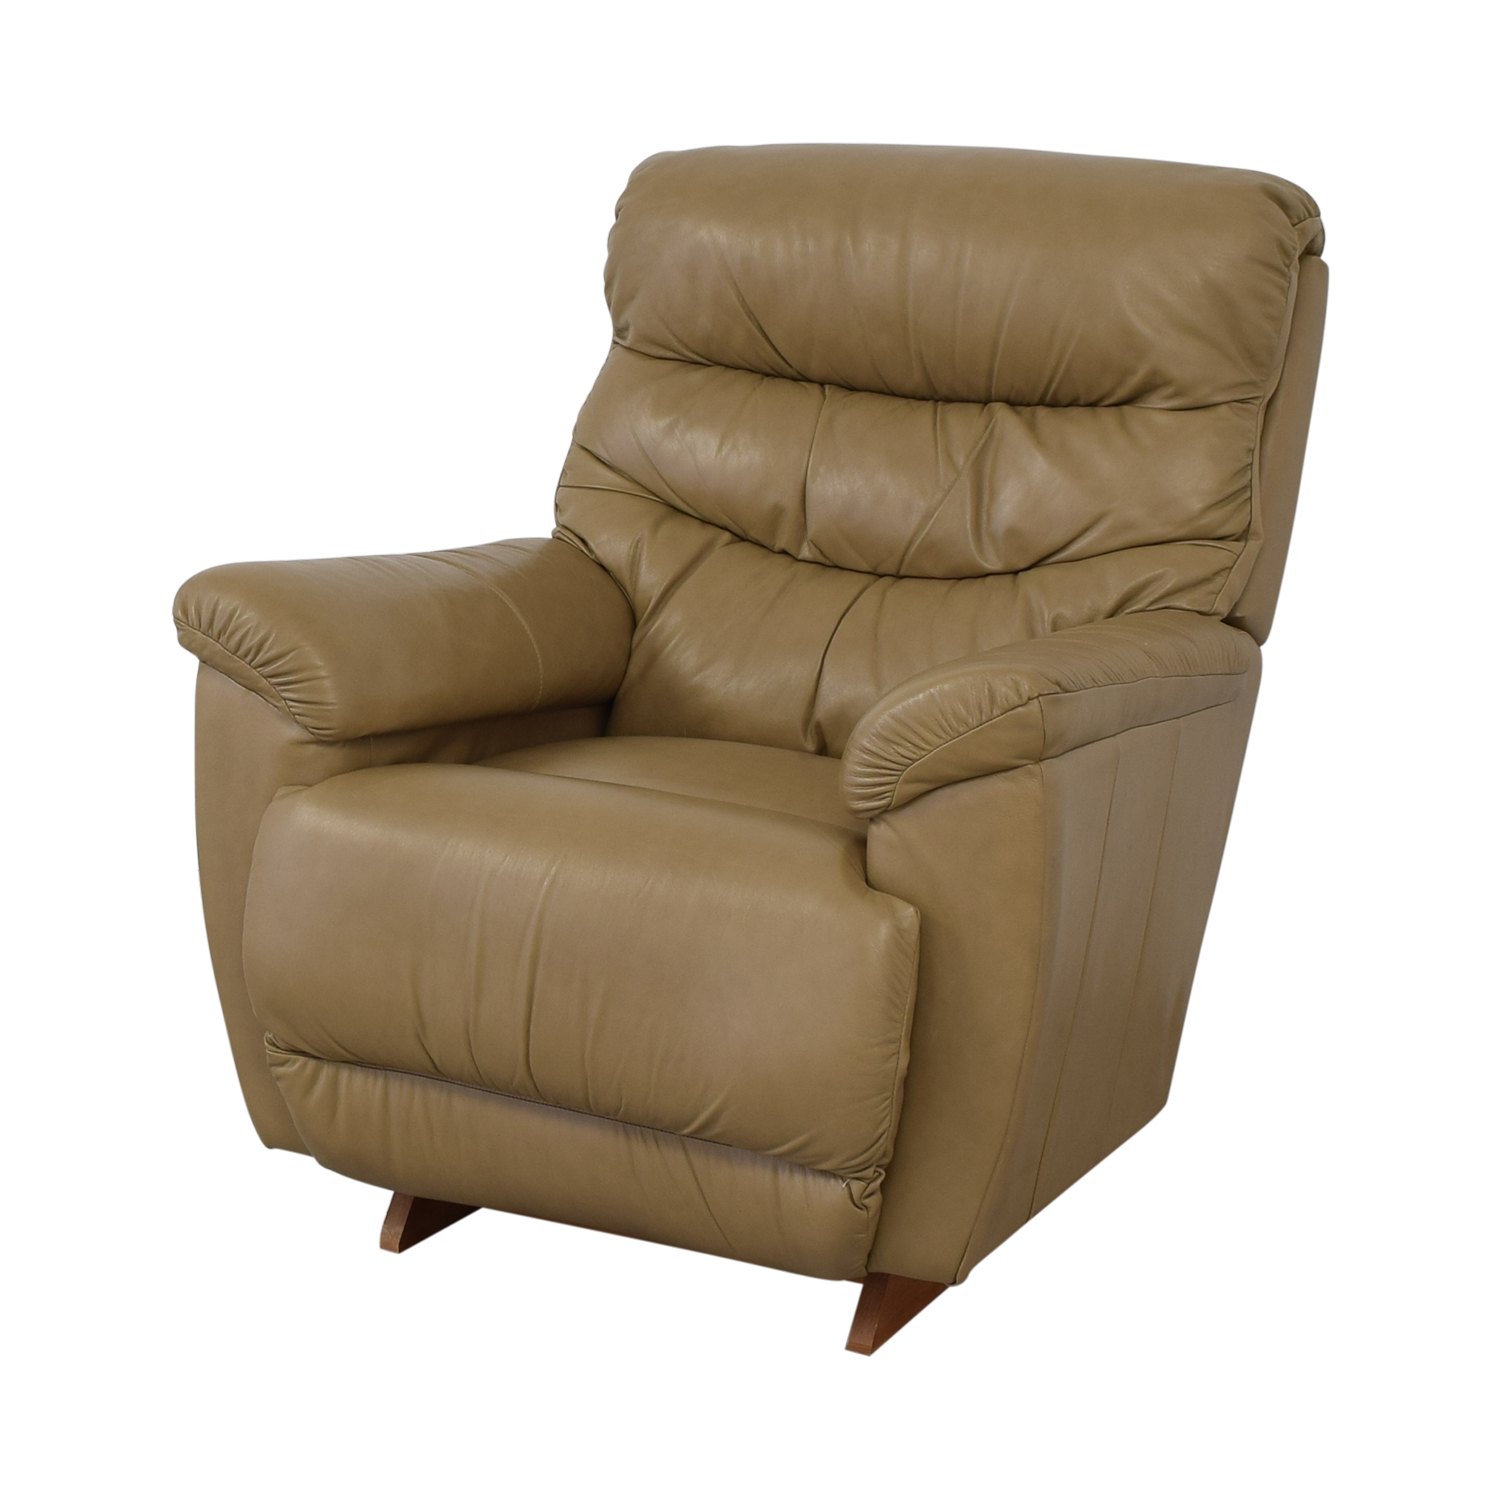 shop La-Z-Boy Leather Recliner La-Z-Boy